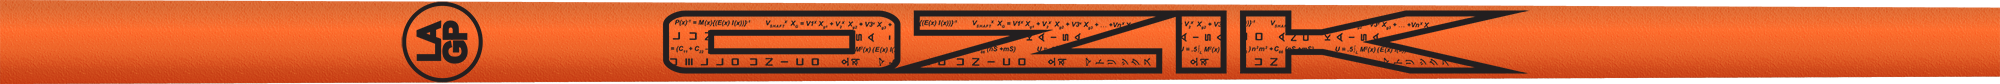 Ozik White Tie: Neon Orange Black Textured - Wood 60 R